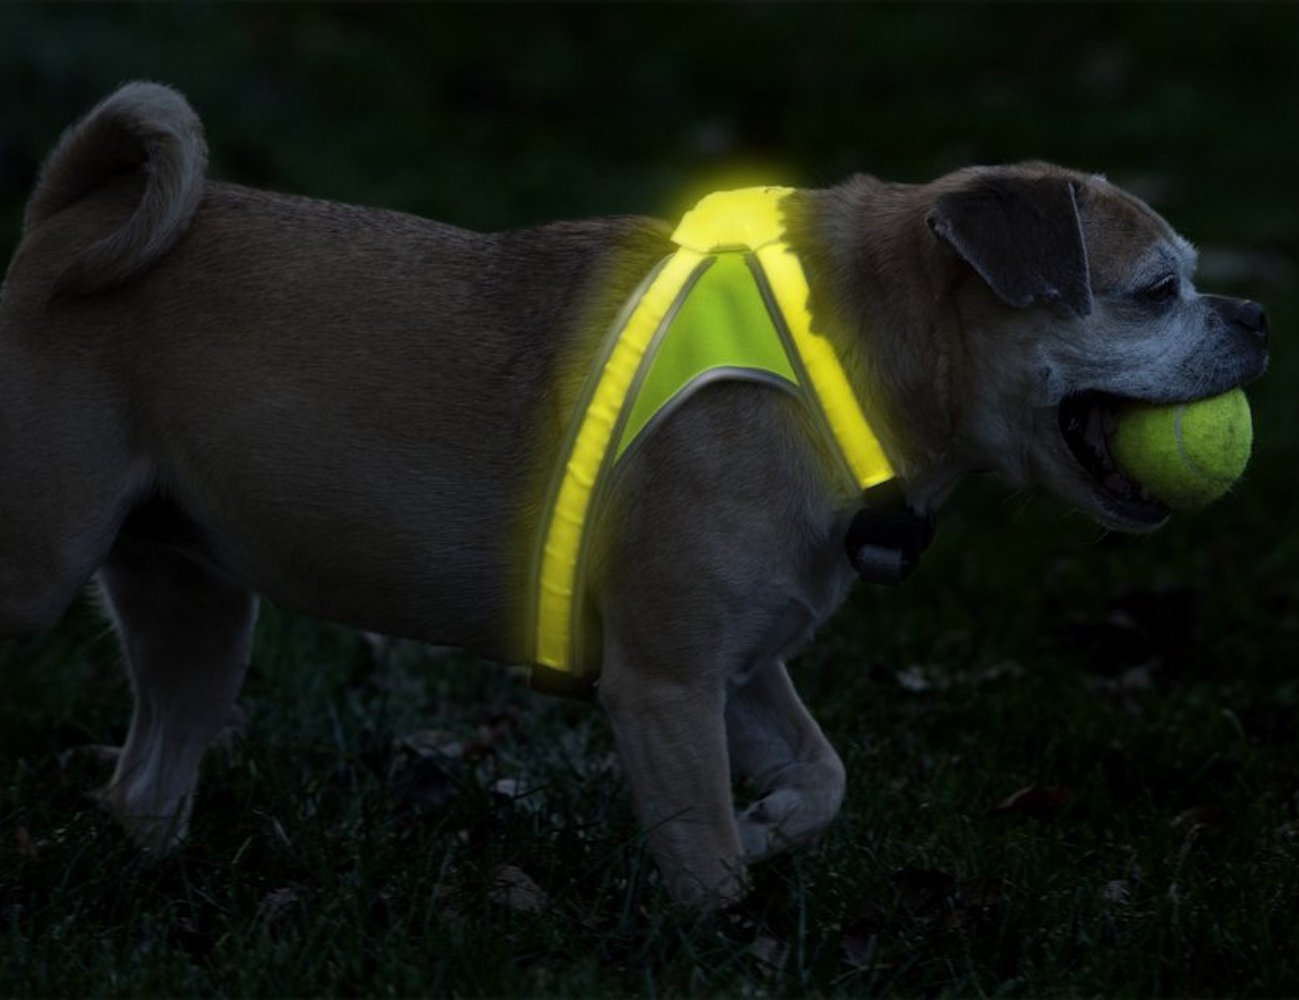 noxgear-lighthound-illuminated-dog-vest-05